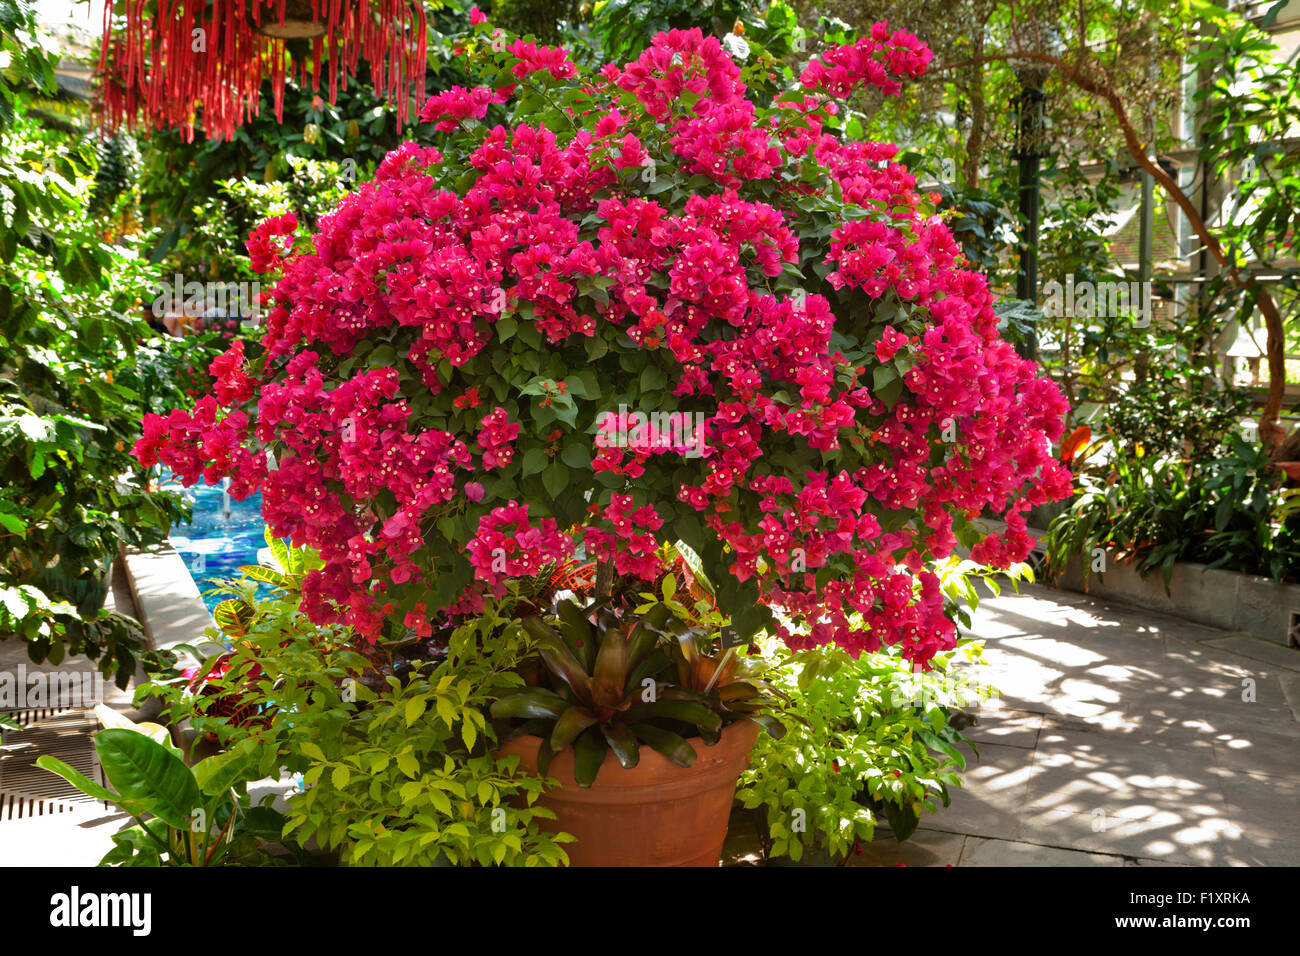 Bougainvillea tree - Stock Image